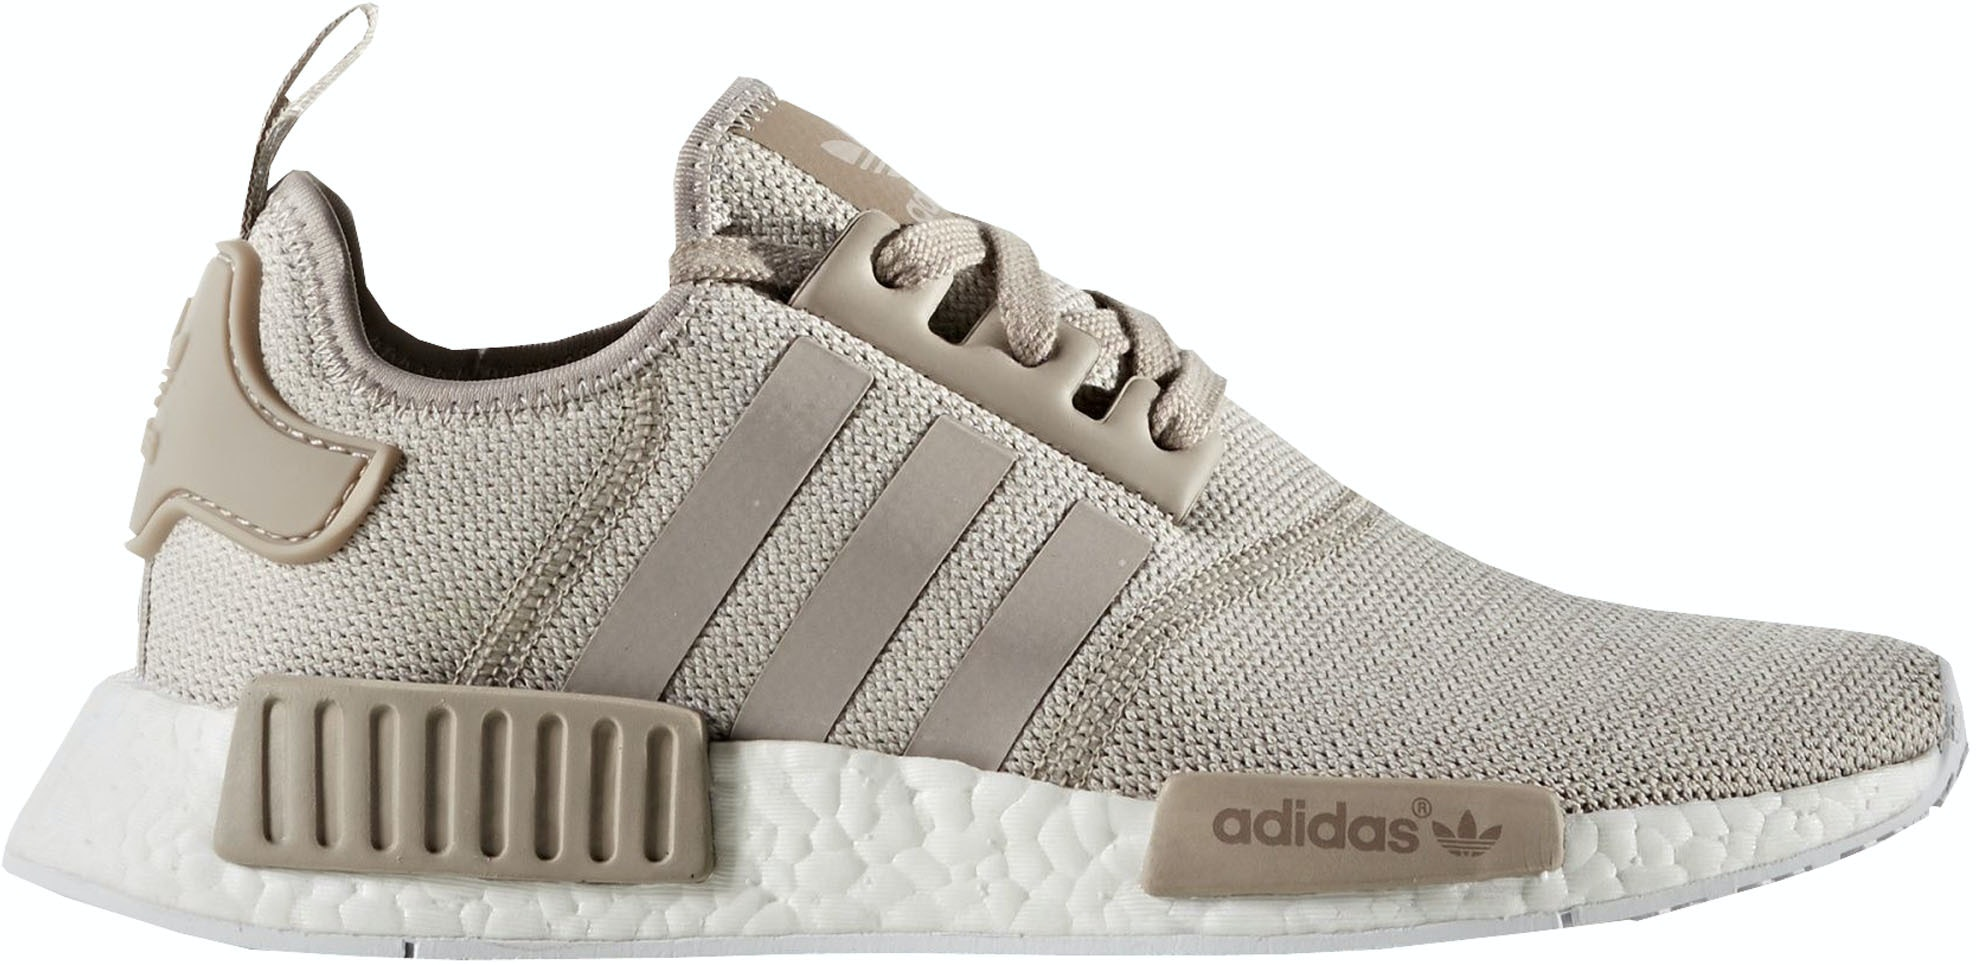 Adidas NMD R1 Vapour Grey (W)